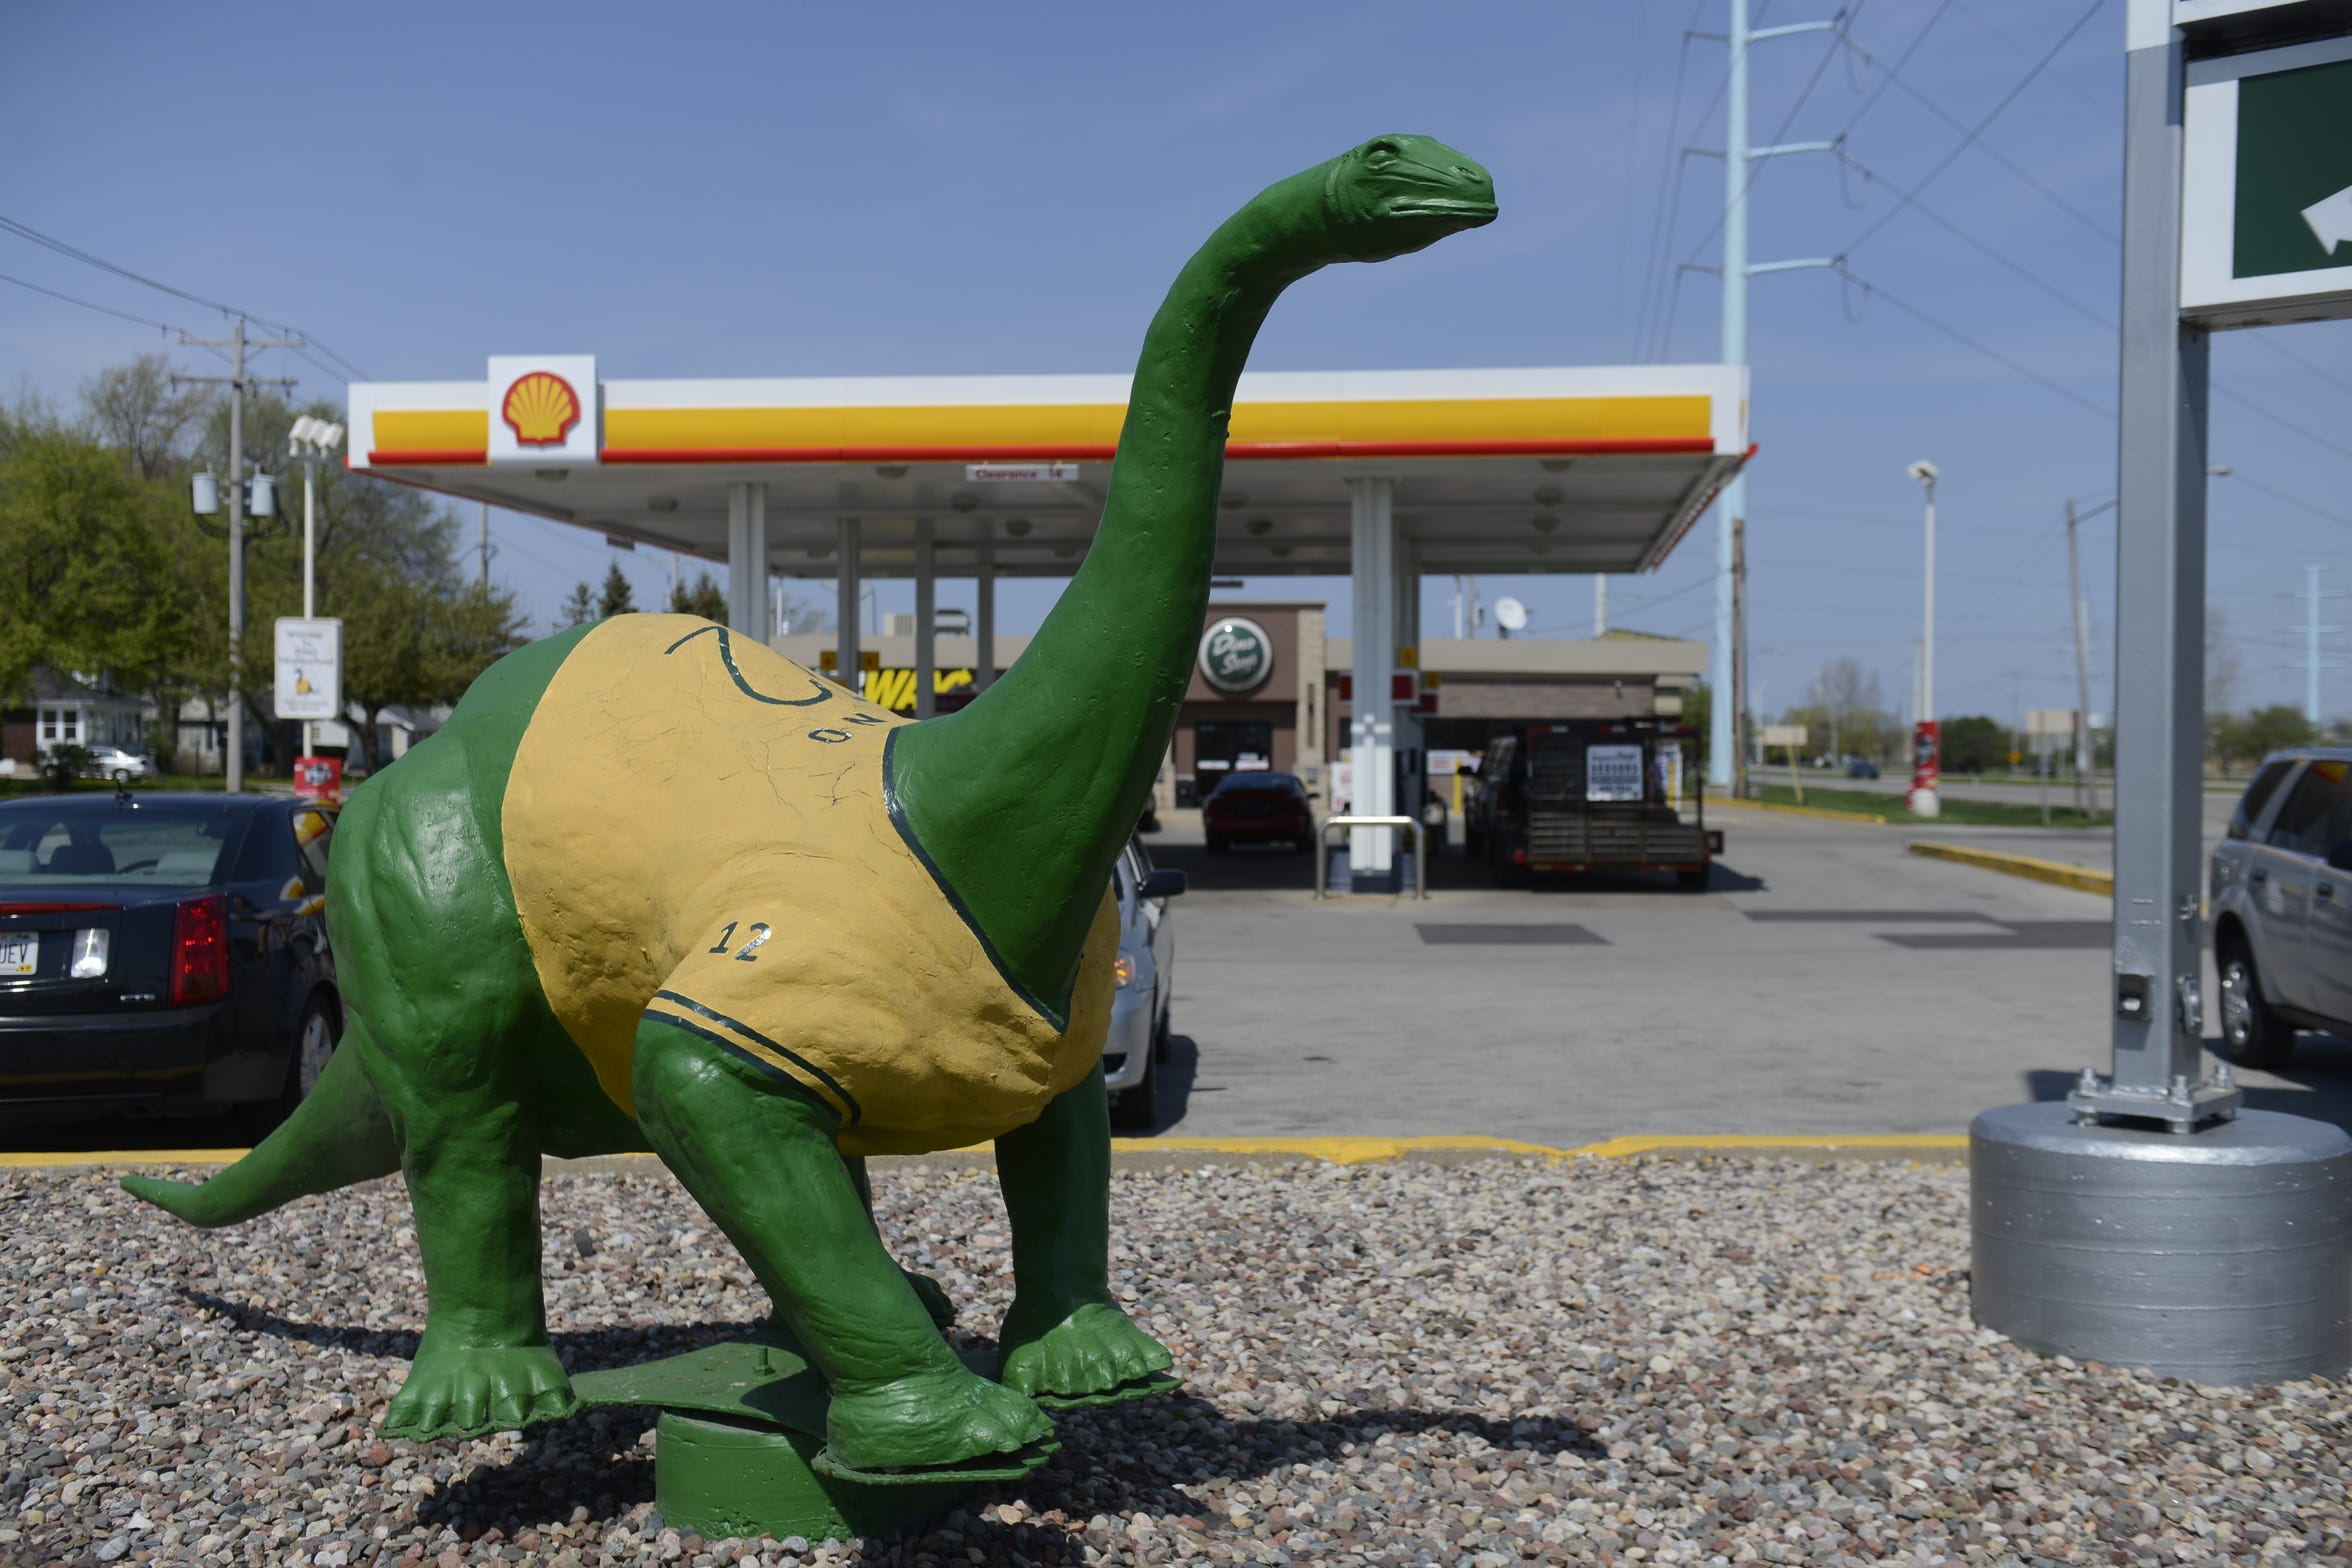 The well-known dinosaur at the corner of Lombardi and Ashland avenues in front of a Dino Stop convenience store.